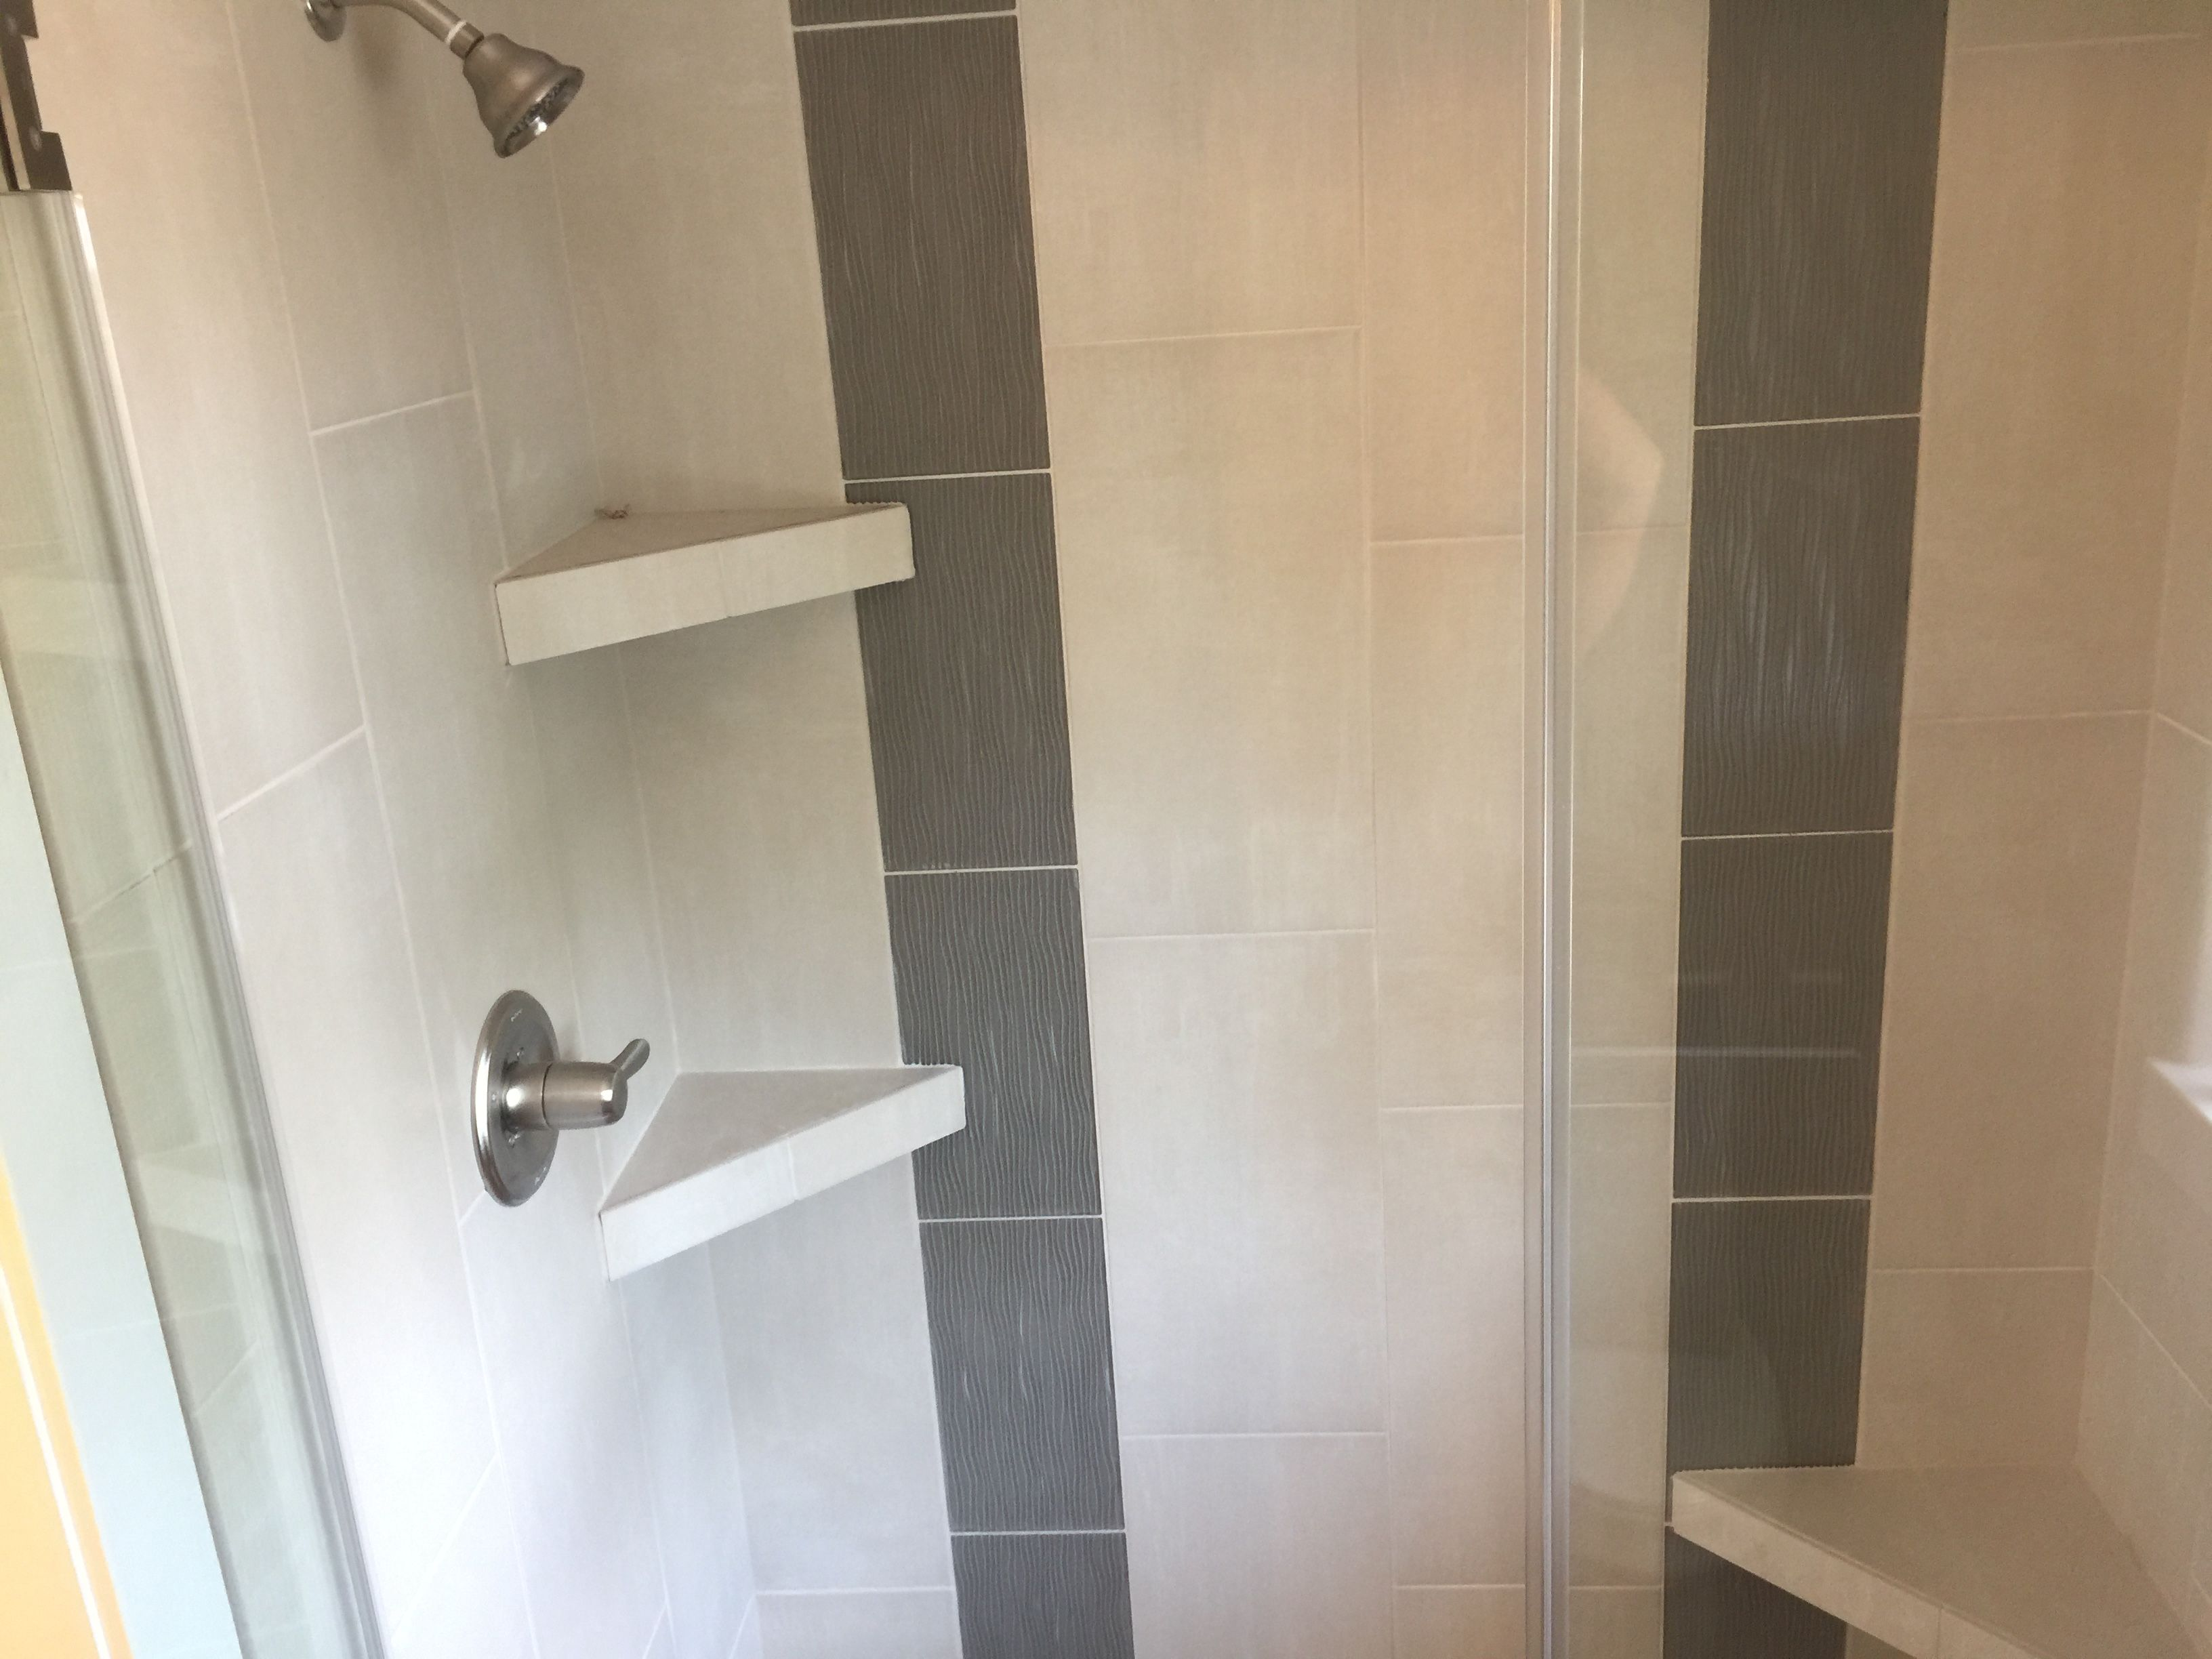 12x24 Tile Shower Custom Tiled Shower With 12x24 Tile Installed 1 3 Staggered